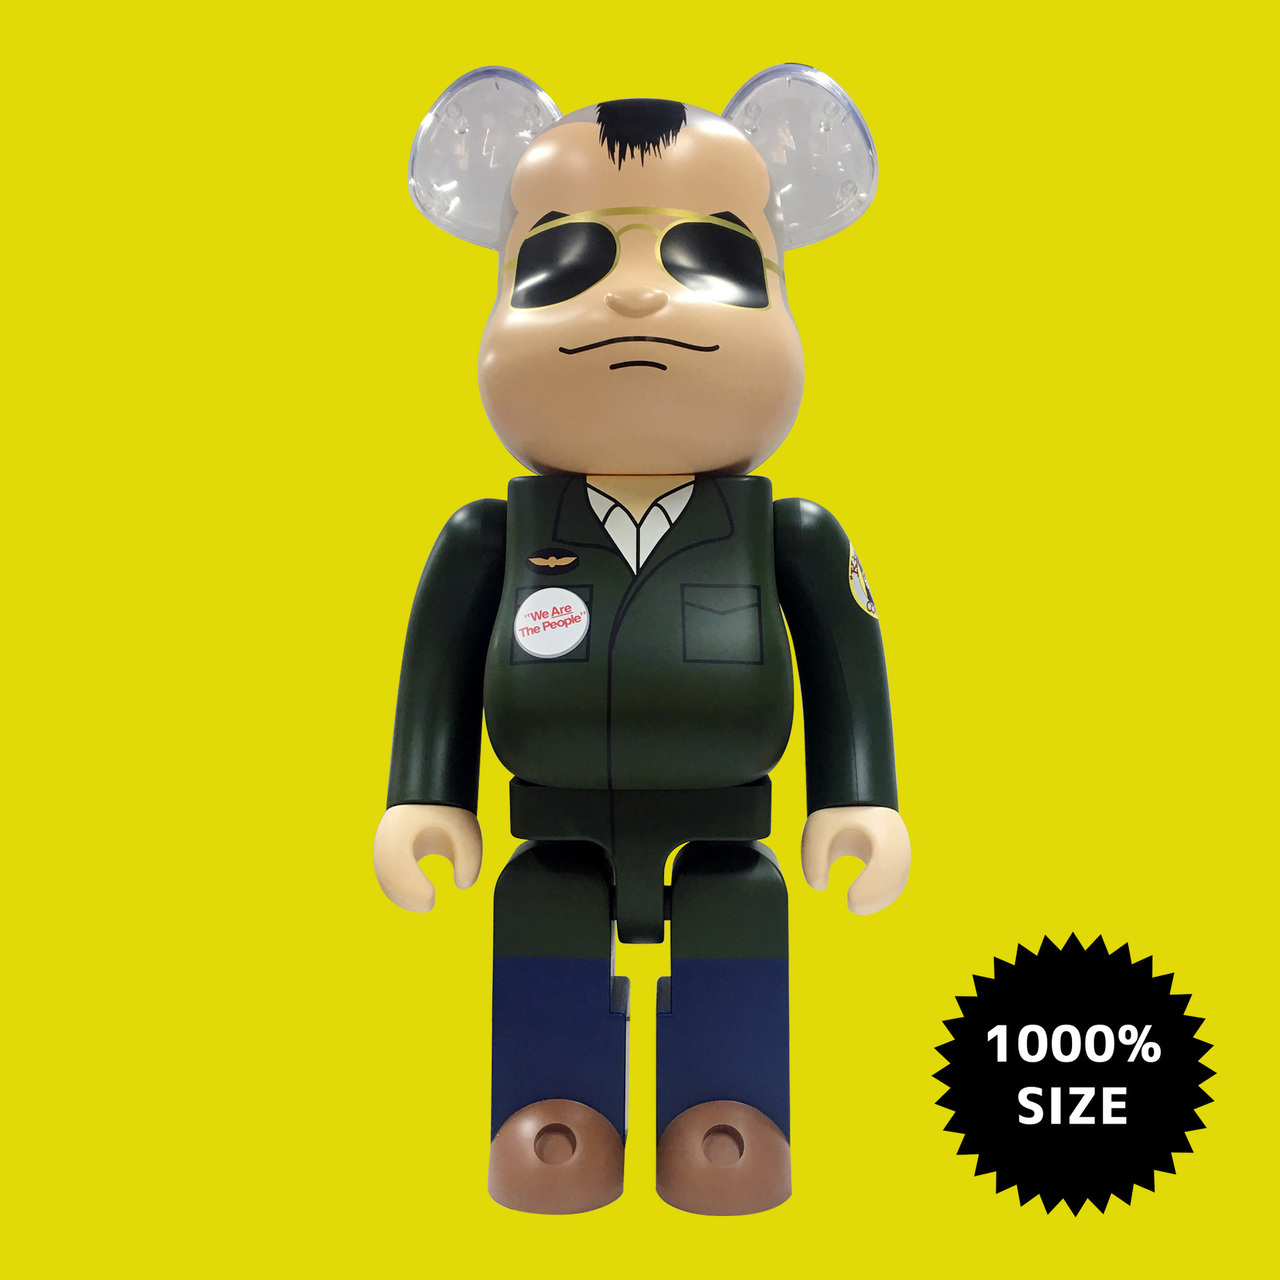 Travis bickle clipart image black and white library Medicom Toy: Bearbrick - Taxi Driver Travis Bickle 1000% image black and white library